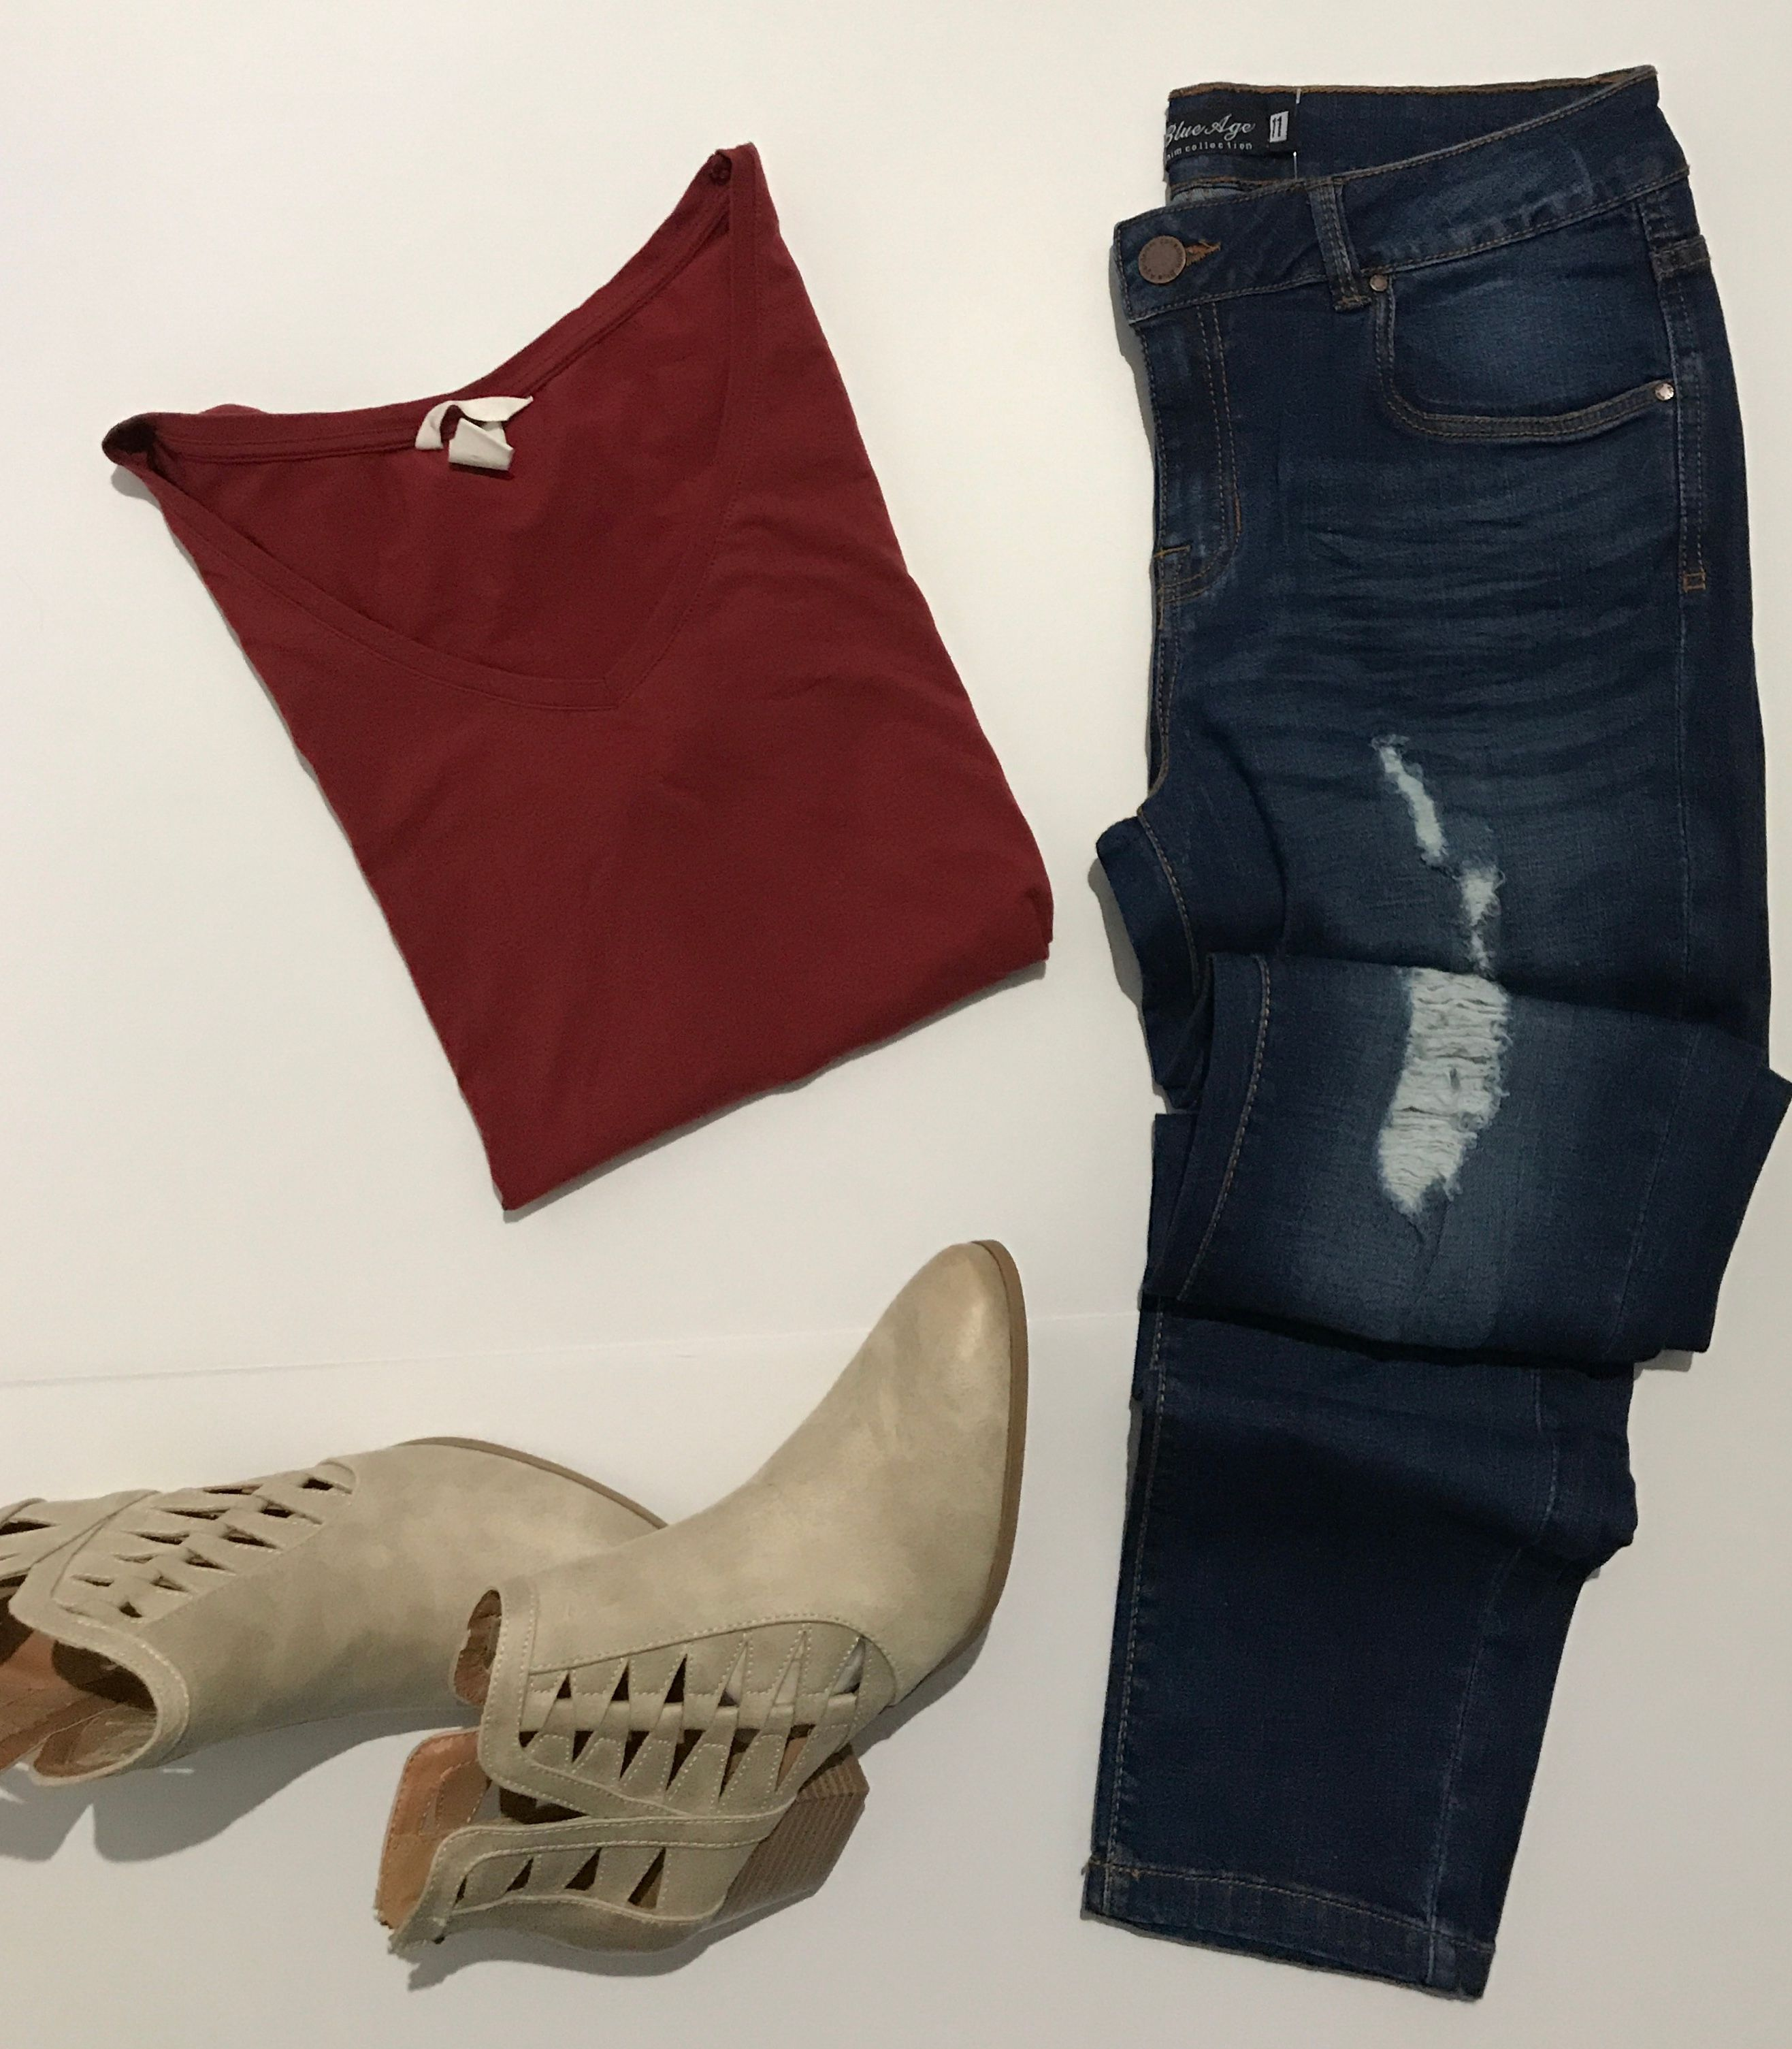 Basic Burnt Orange T Shirt From Hm With Distressed Skinny Jeans And Baby Happy Body Fit Pants L30 Taupe Cutout Booties